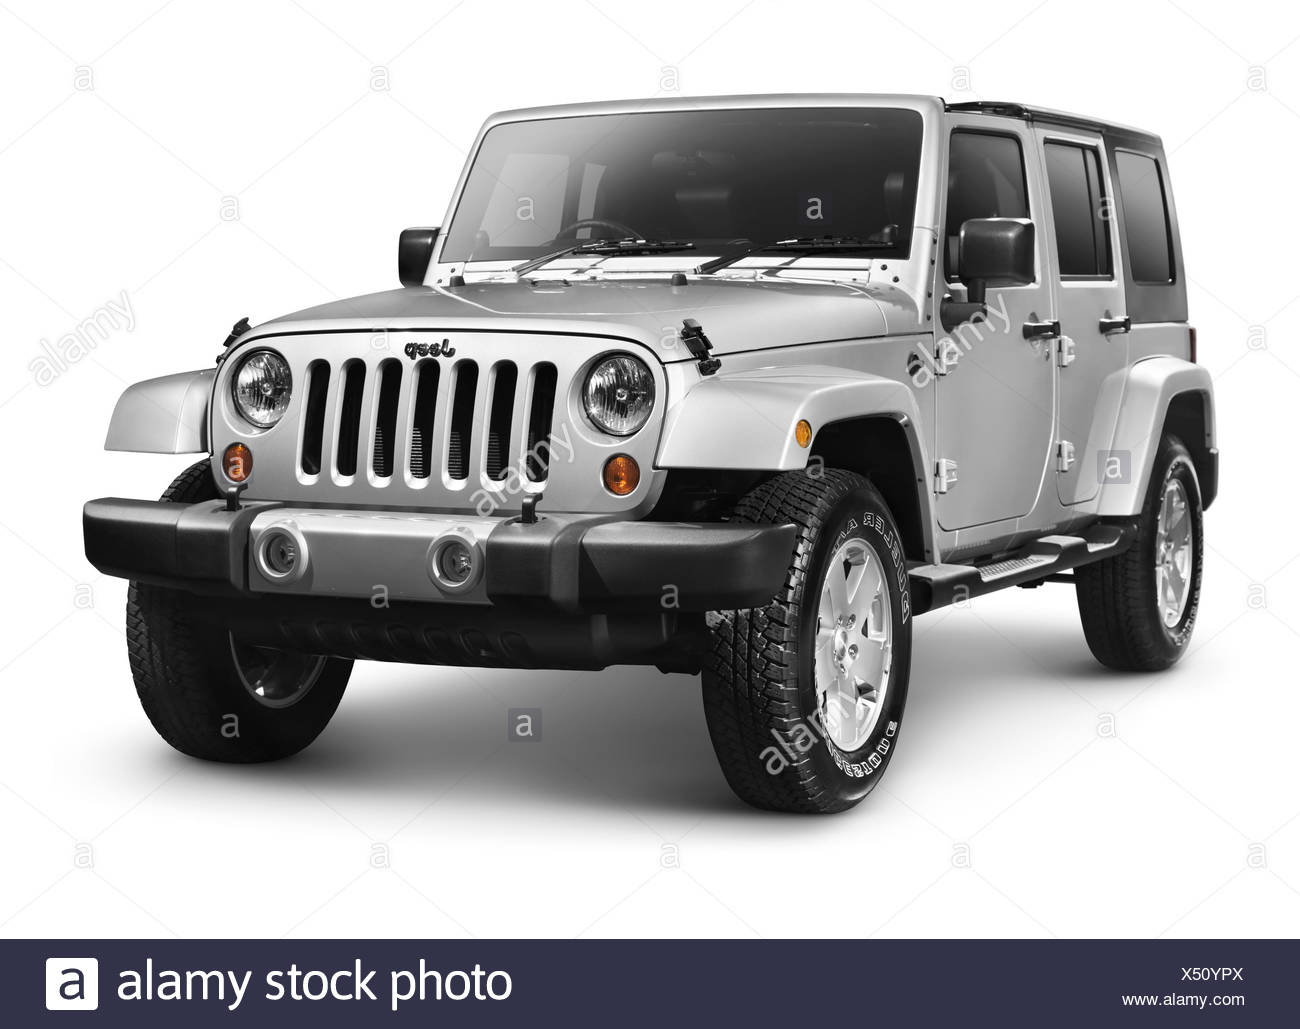 Silver 2011 Jeep Wrangler Unlimited Sahara 4x4 SUV - Stock Image